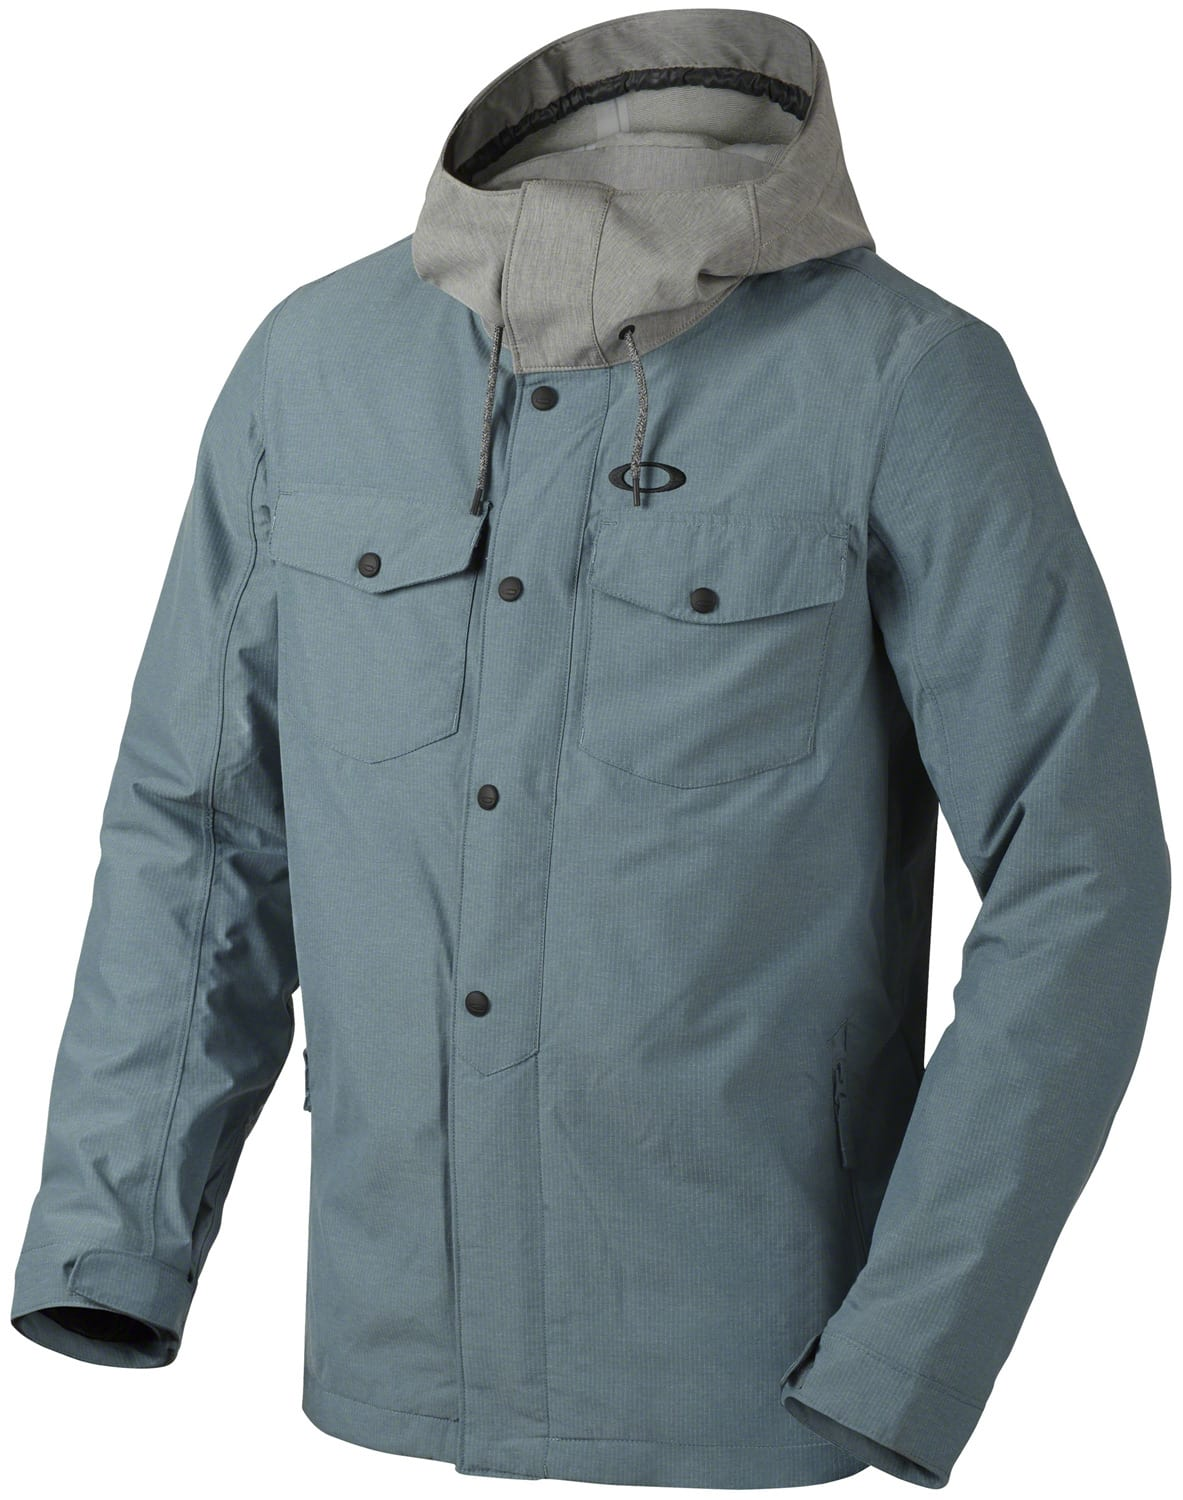 On Sale Oakley Division Biozone Snowboard Jacket Up To 40 Off